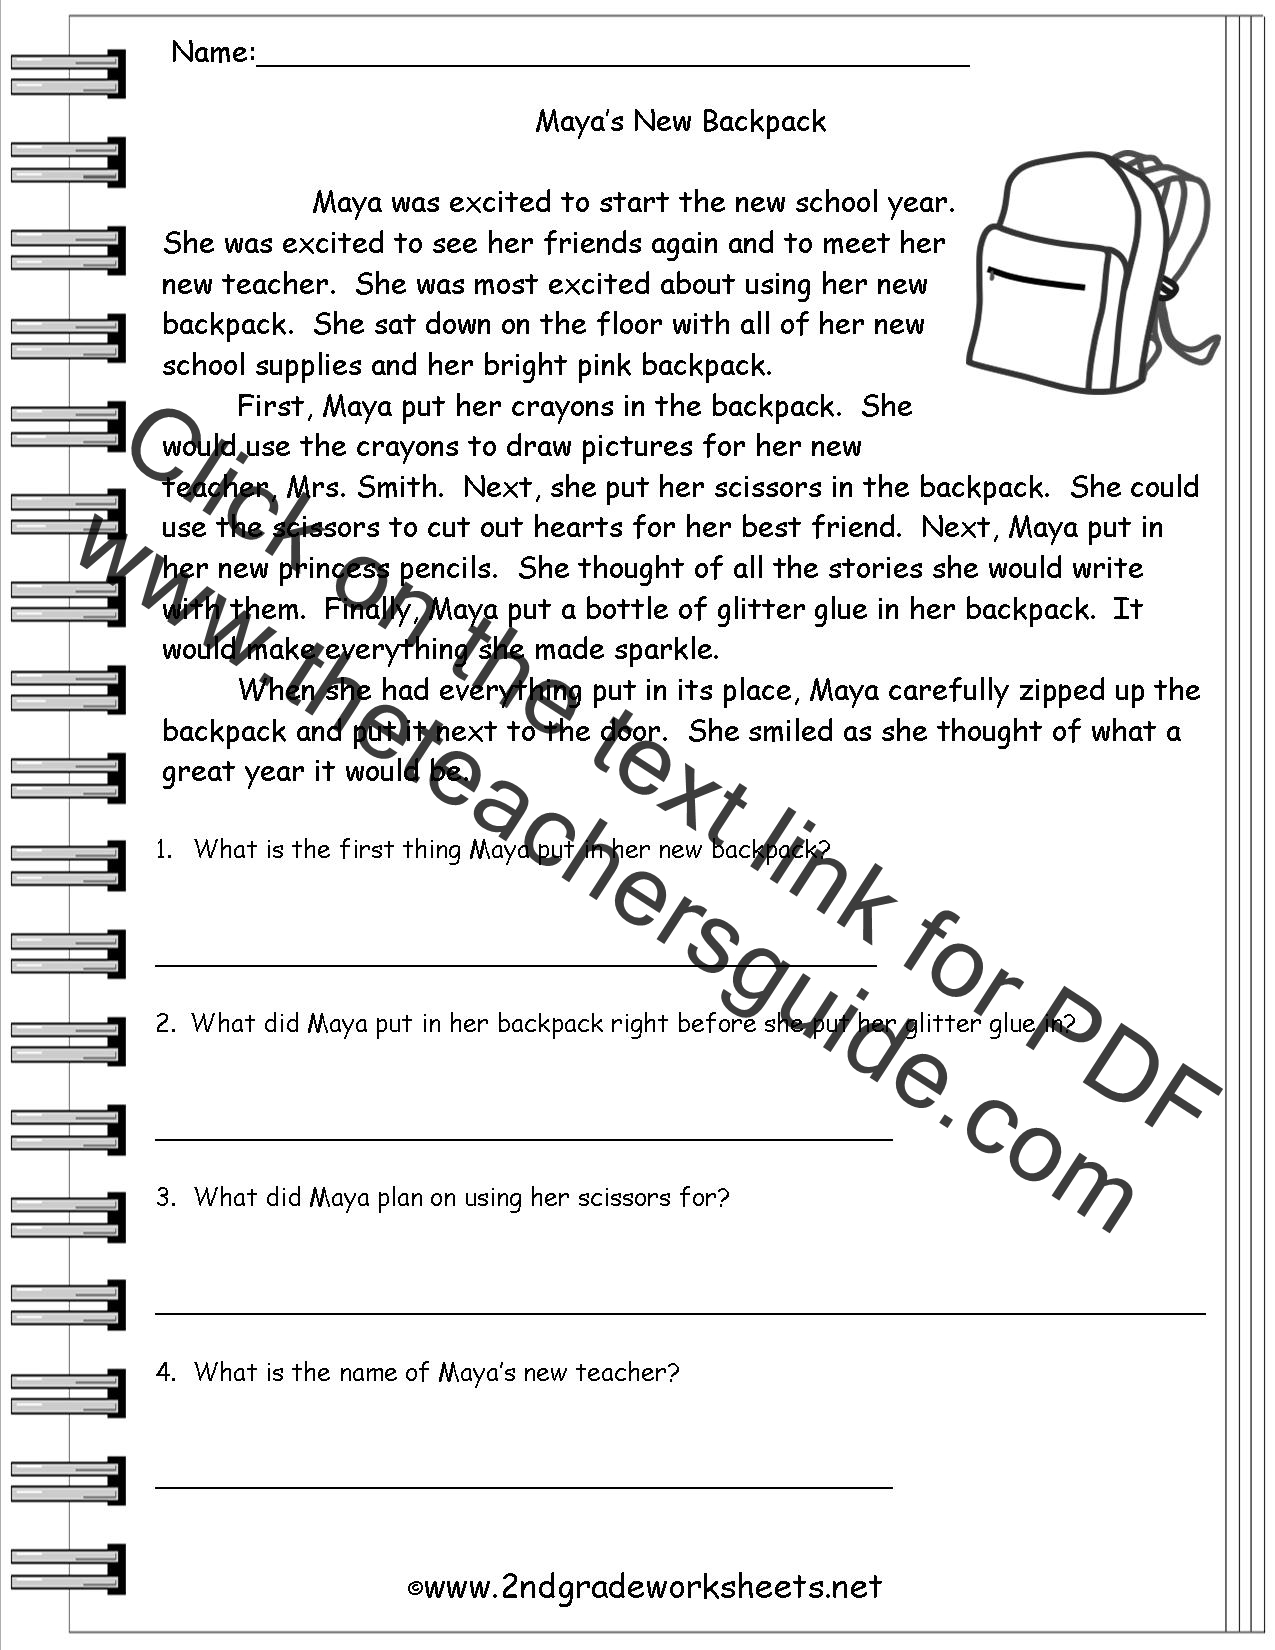 Worksheets Free Printable Reading Comprehension Worksheets For 5th Grade worksheet reading comprehension passages for 3rd grade wosenly 3 download pdf printable worksheets 4